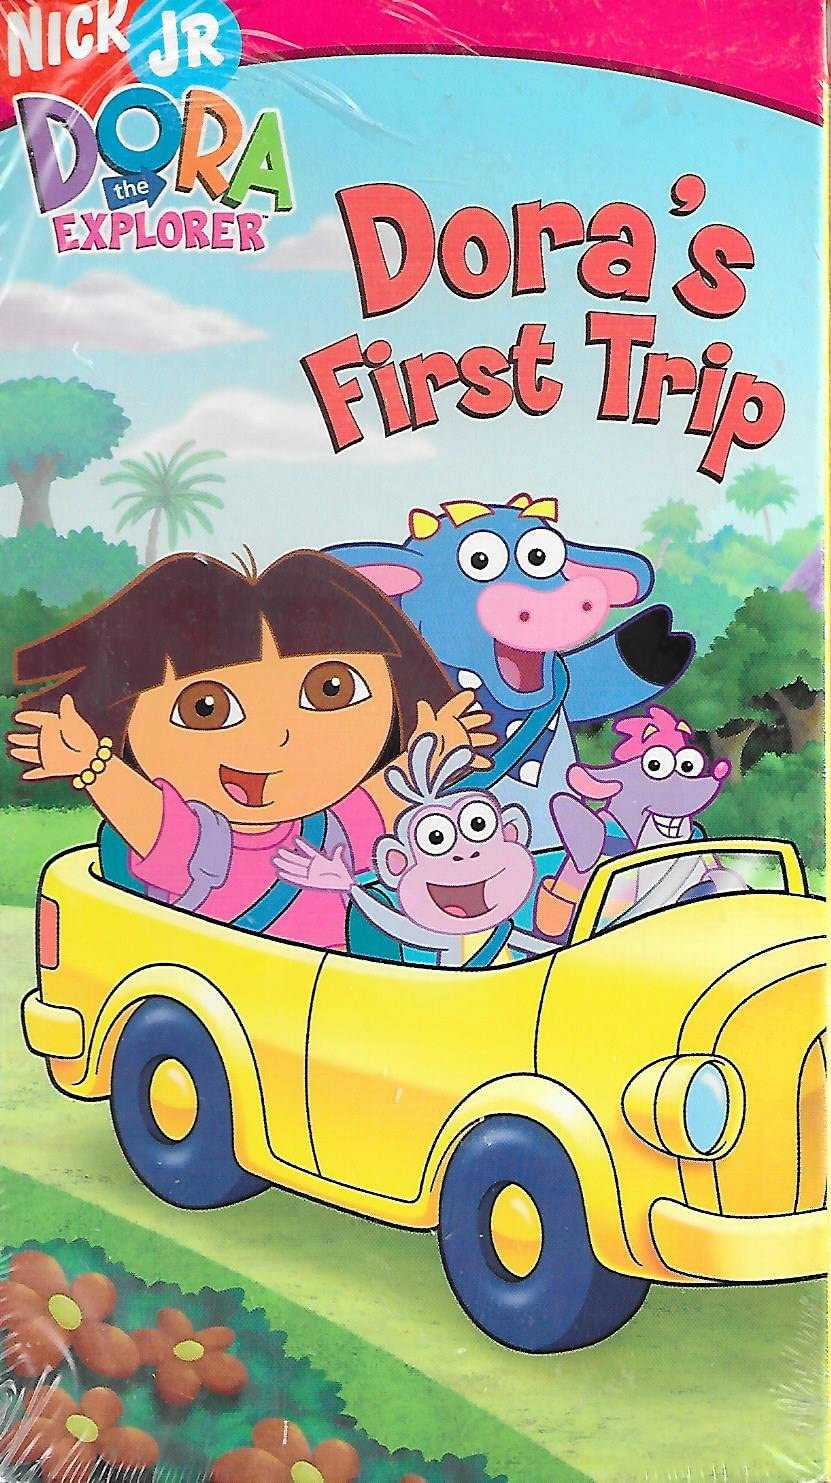 Dora the Explorer: Dora's First Trip (2006 VHS)